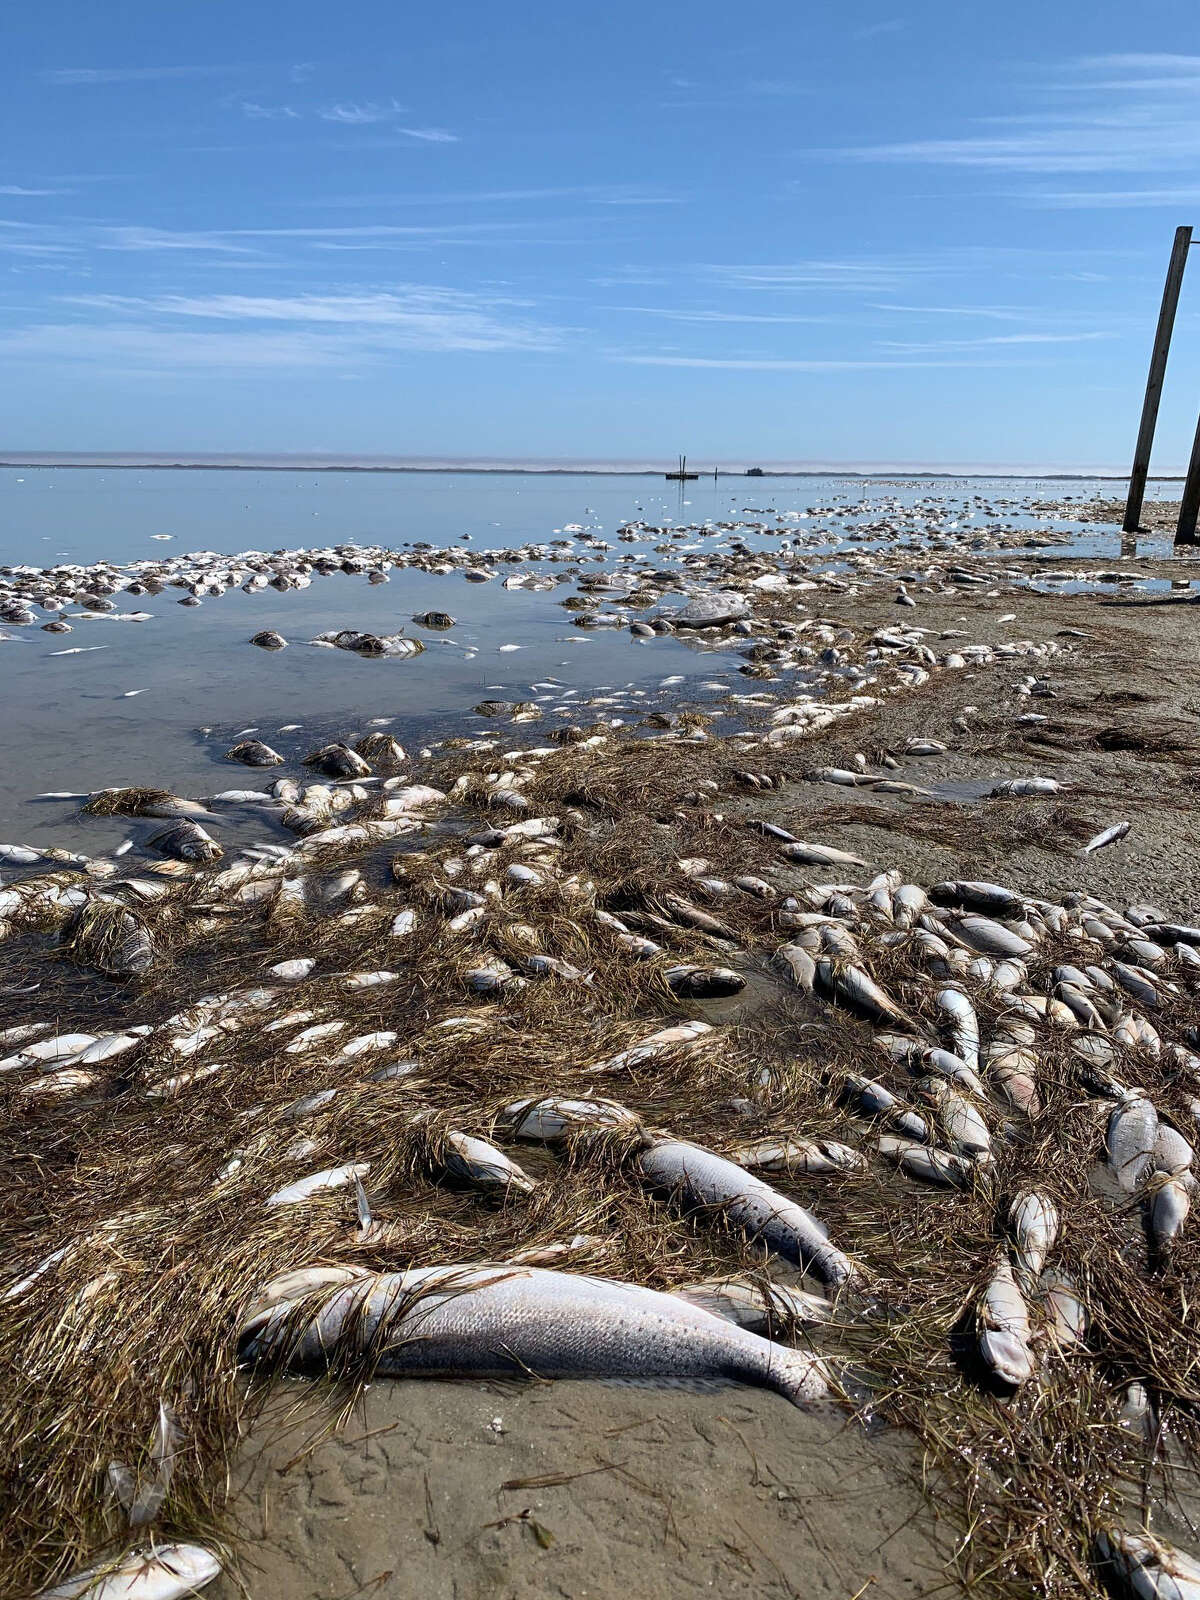 Texas Parks and Wildlife Department announced Wednesday that the Texas snowstorm killed at least 3.8 million fish.